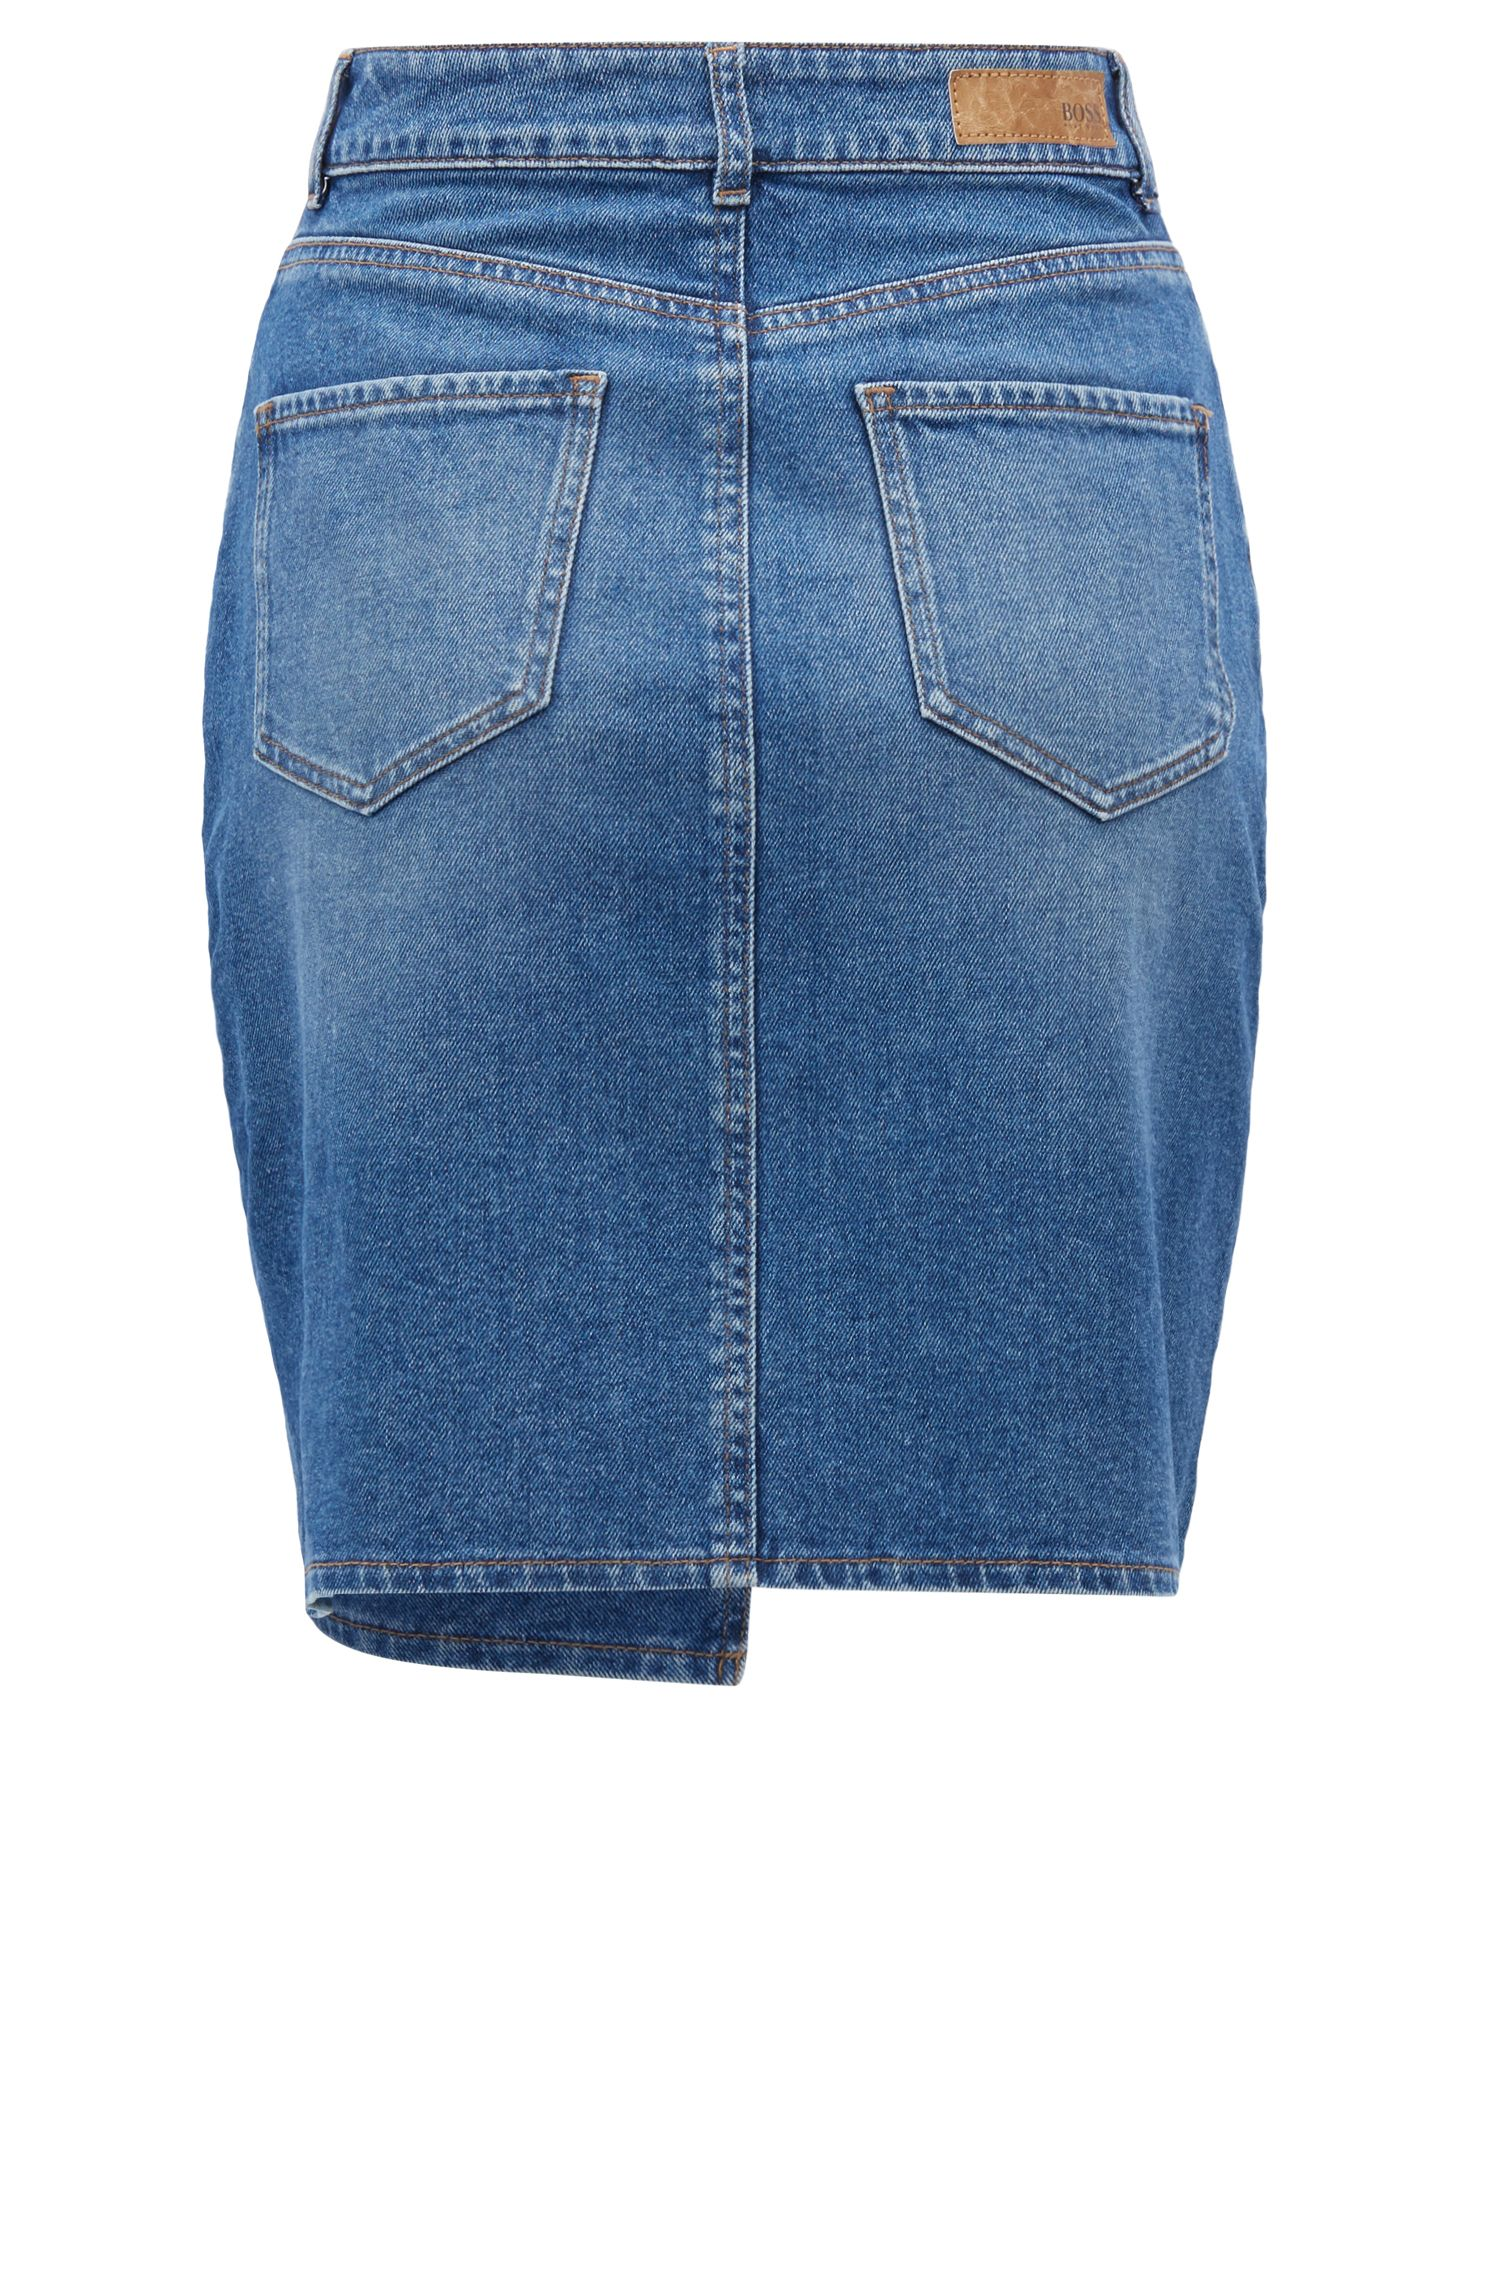 Gonna in denim dalla linea svasata con orlo irregolare, Blu